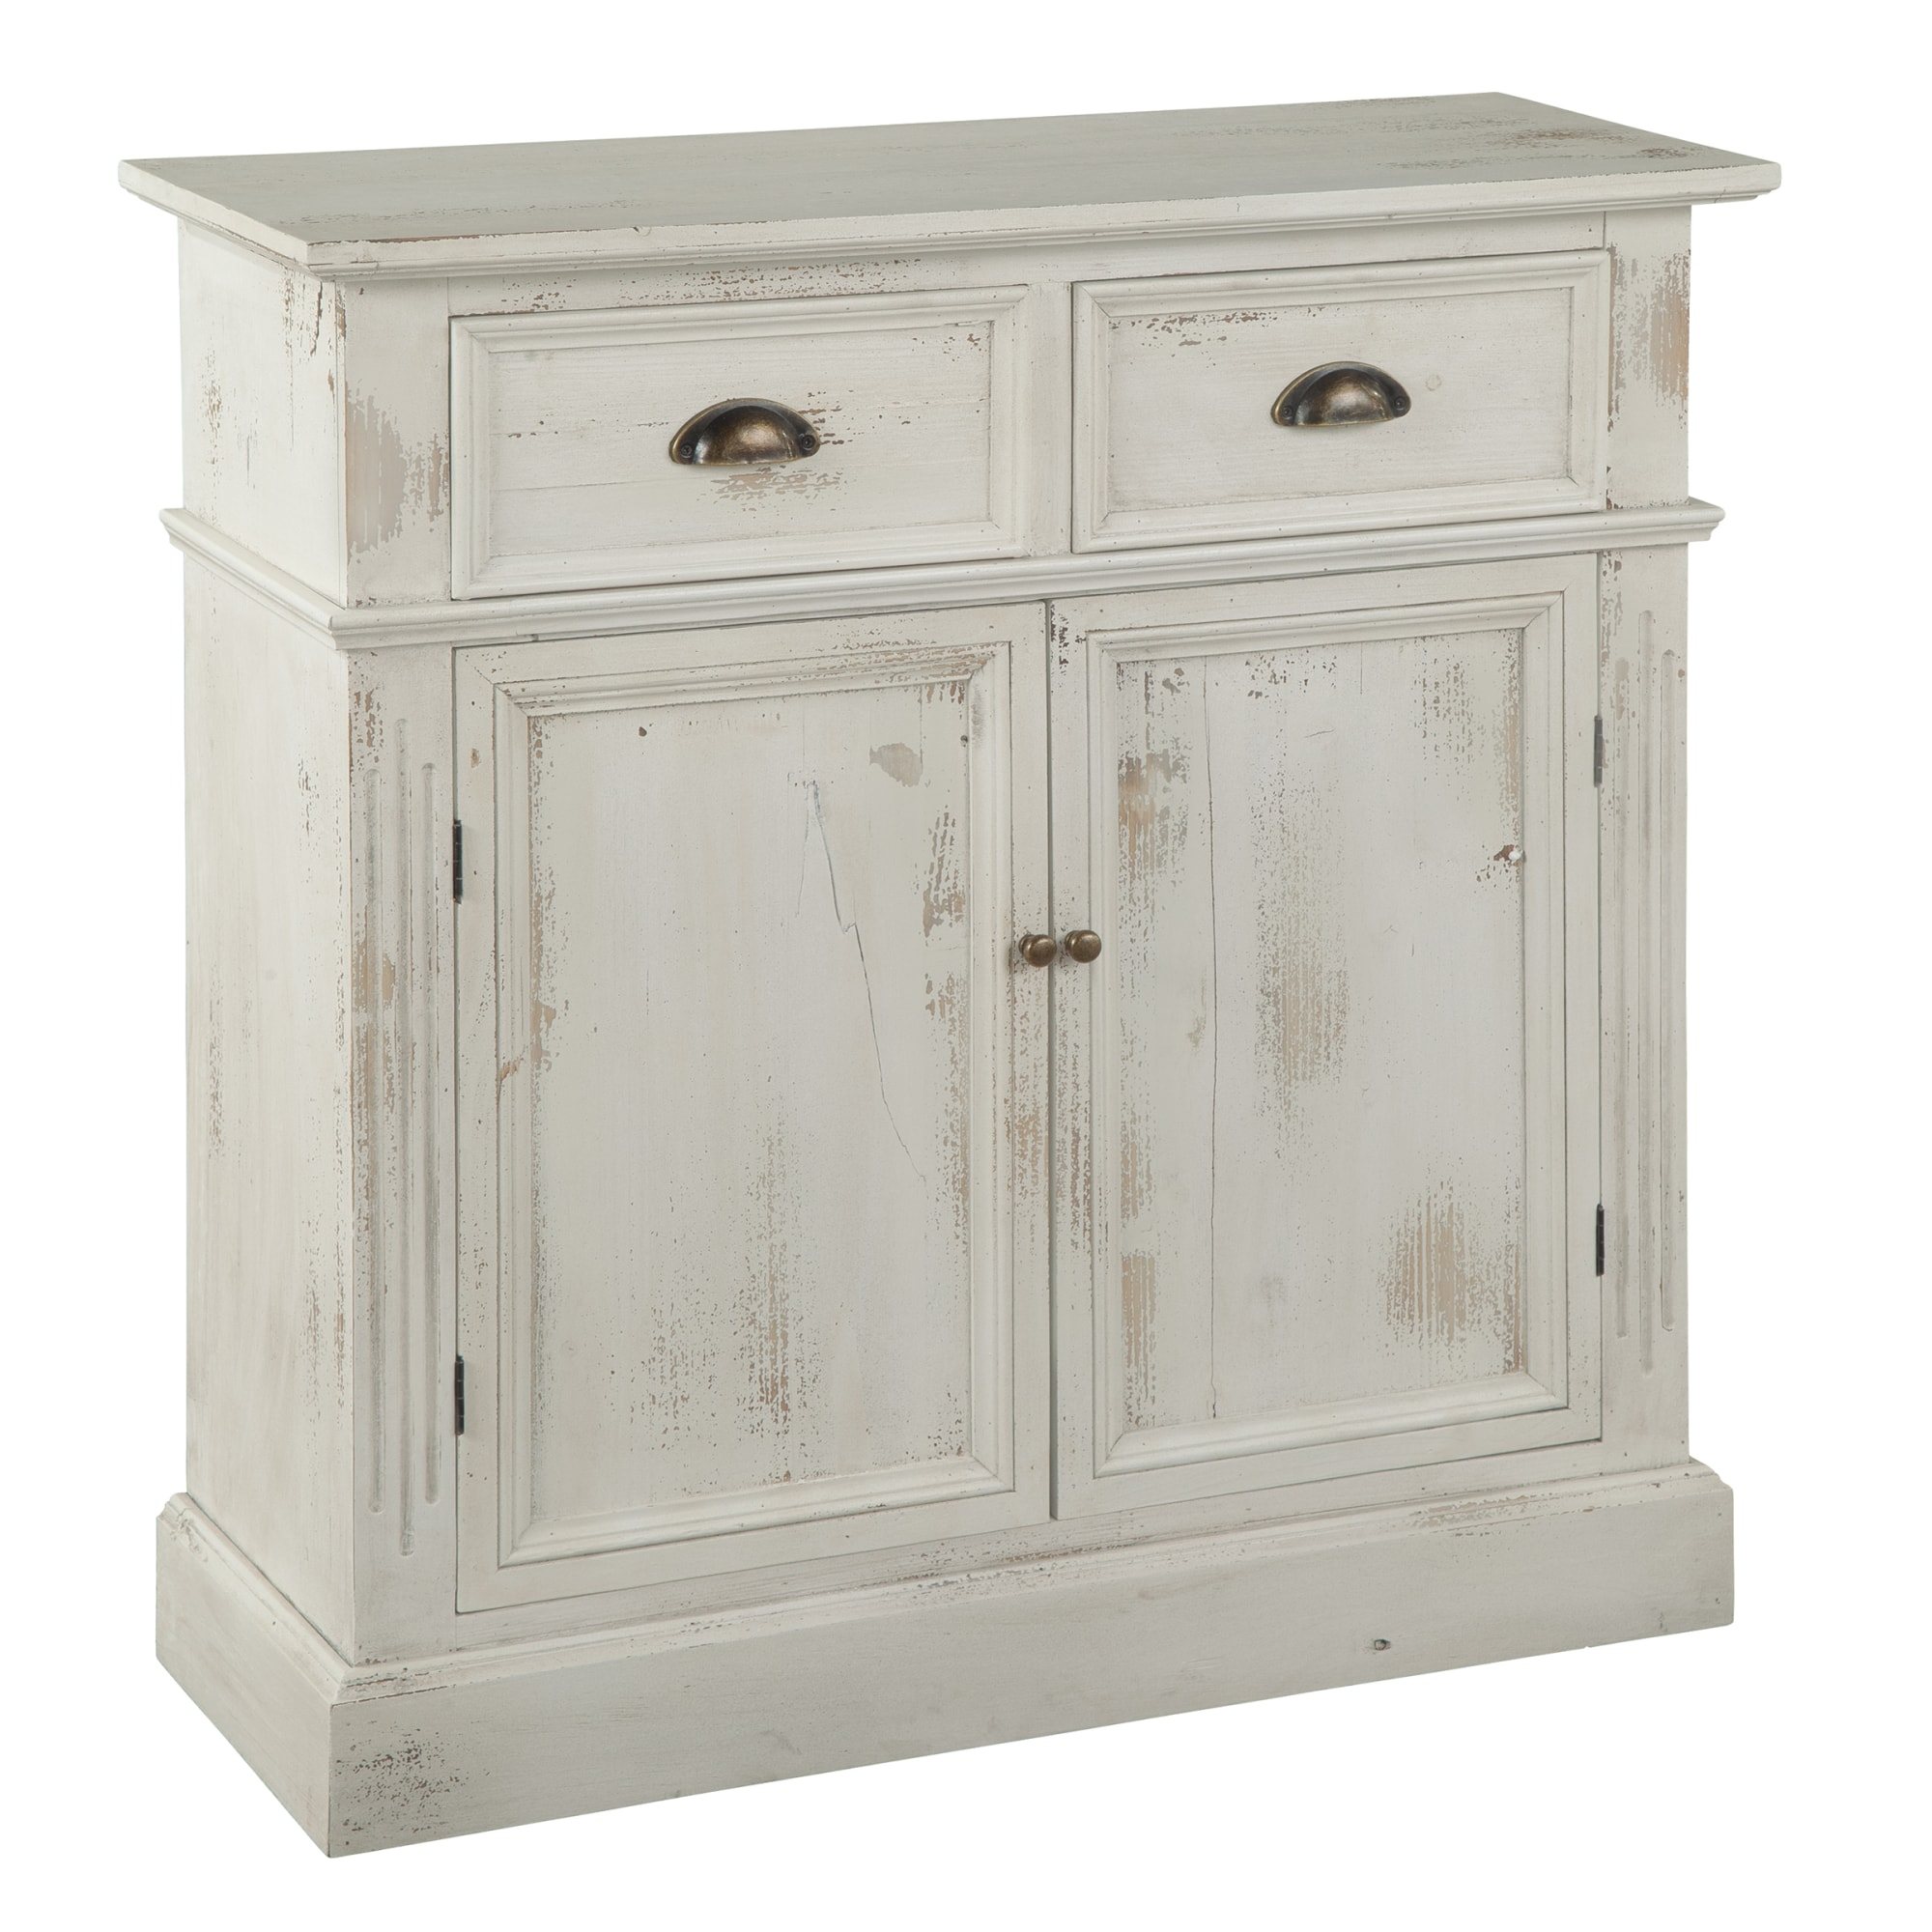 Image for 2-7787 Marketplace Rustic White Door & Drawer Cabinet from Hekman Official Website